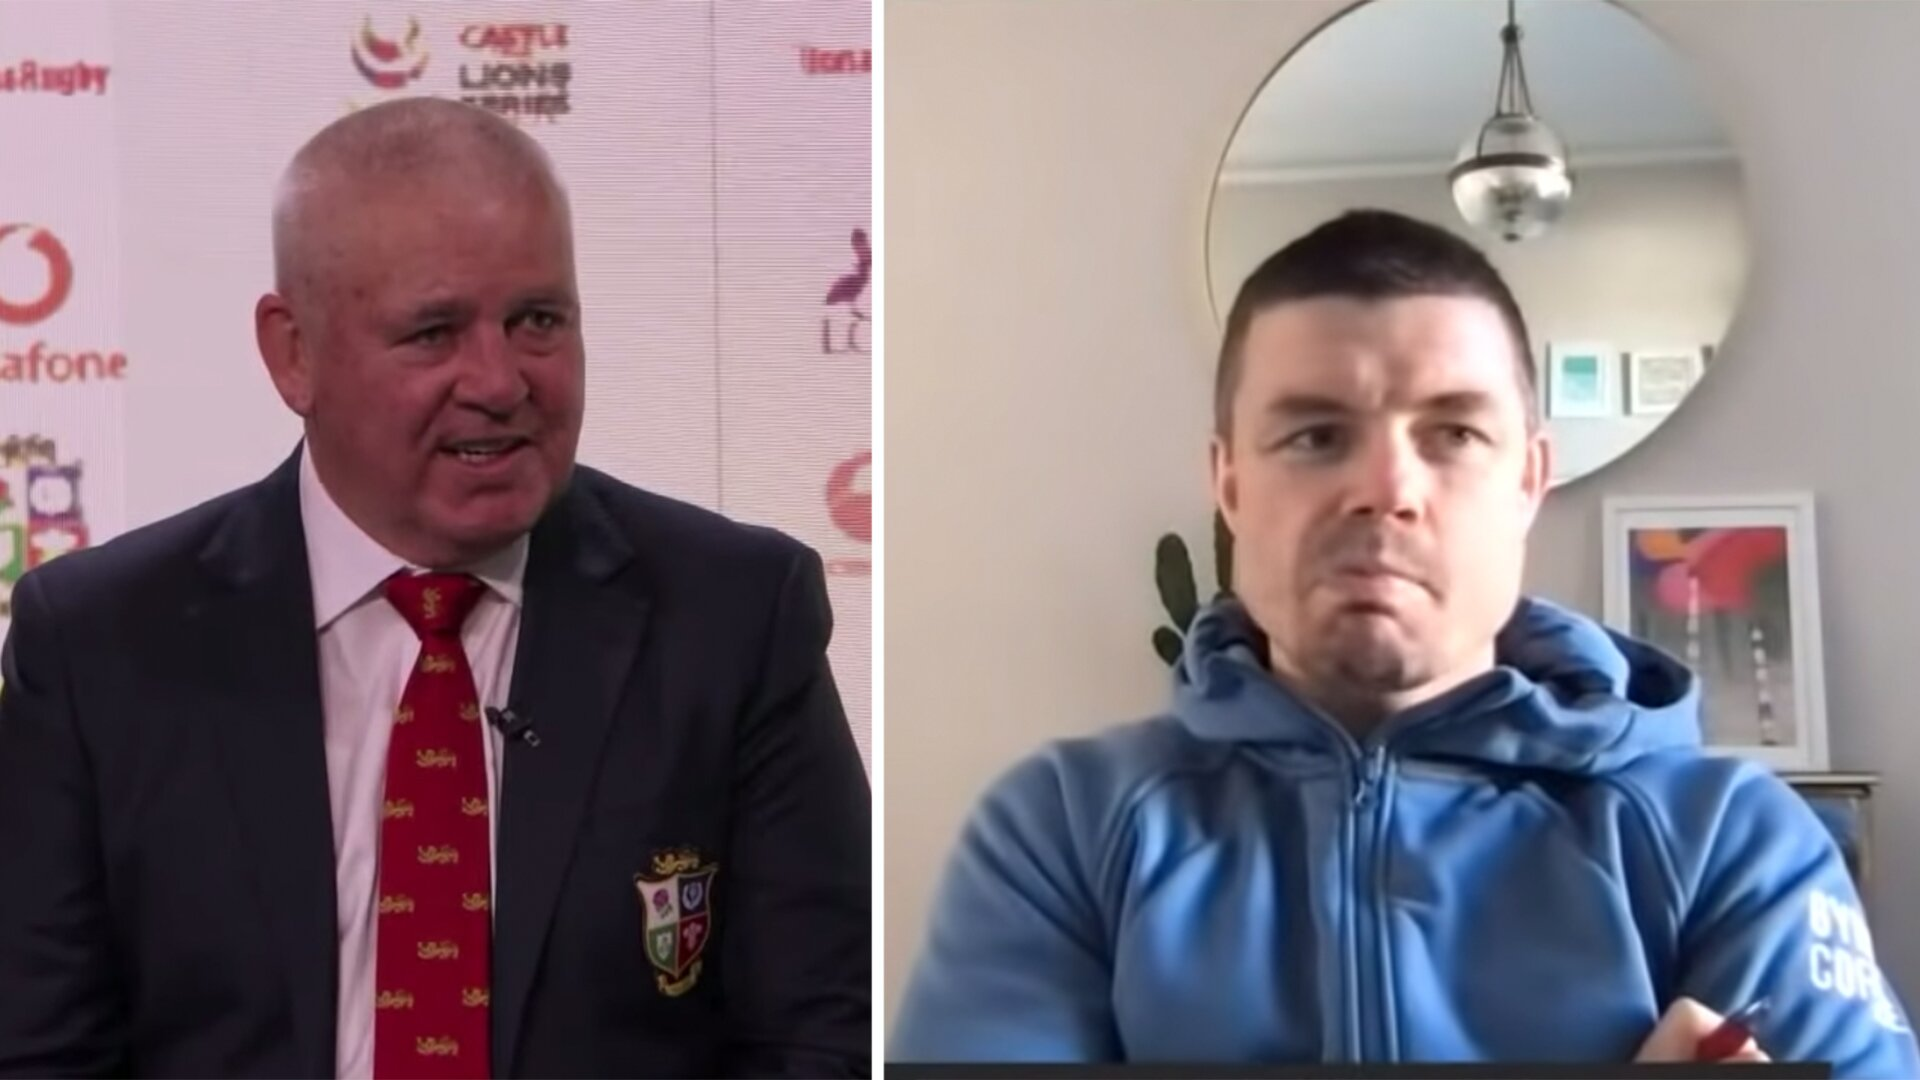 Brian O'Driscoll makes thinly veiled digs at Scotland rugby players in bizarre Lions squad reaction